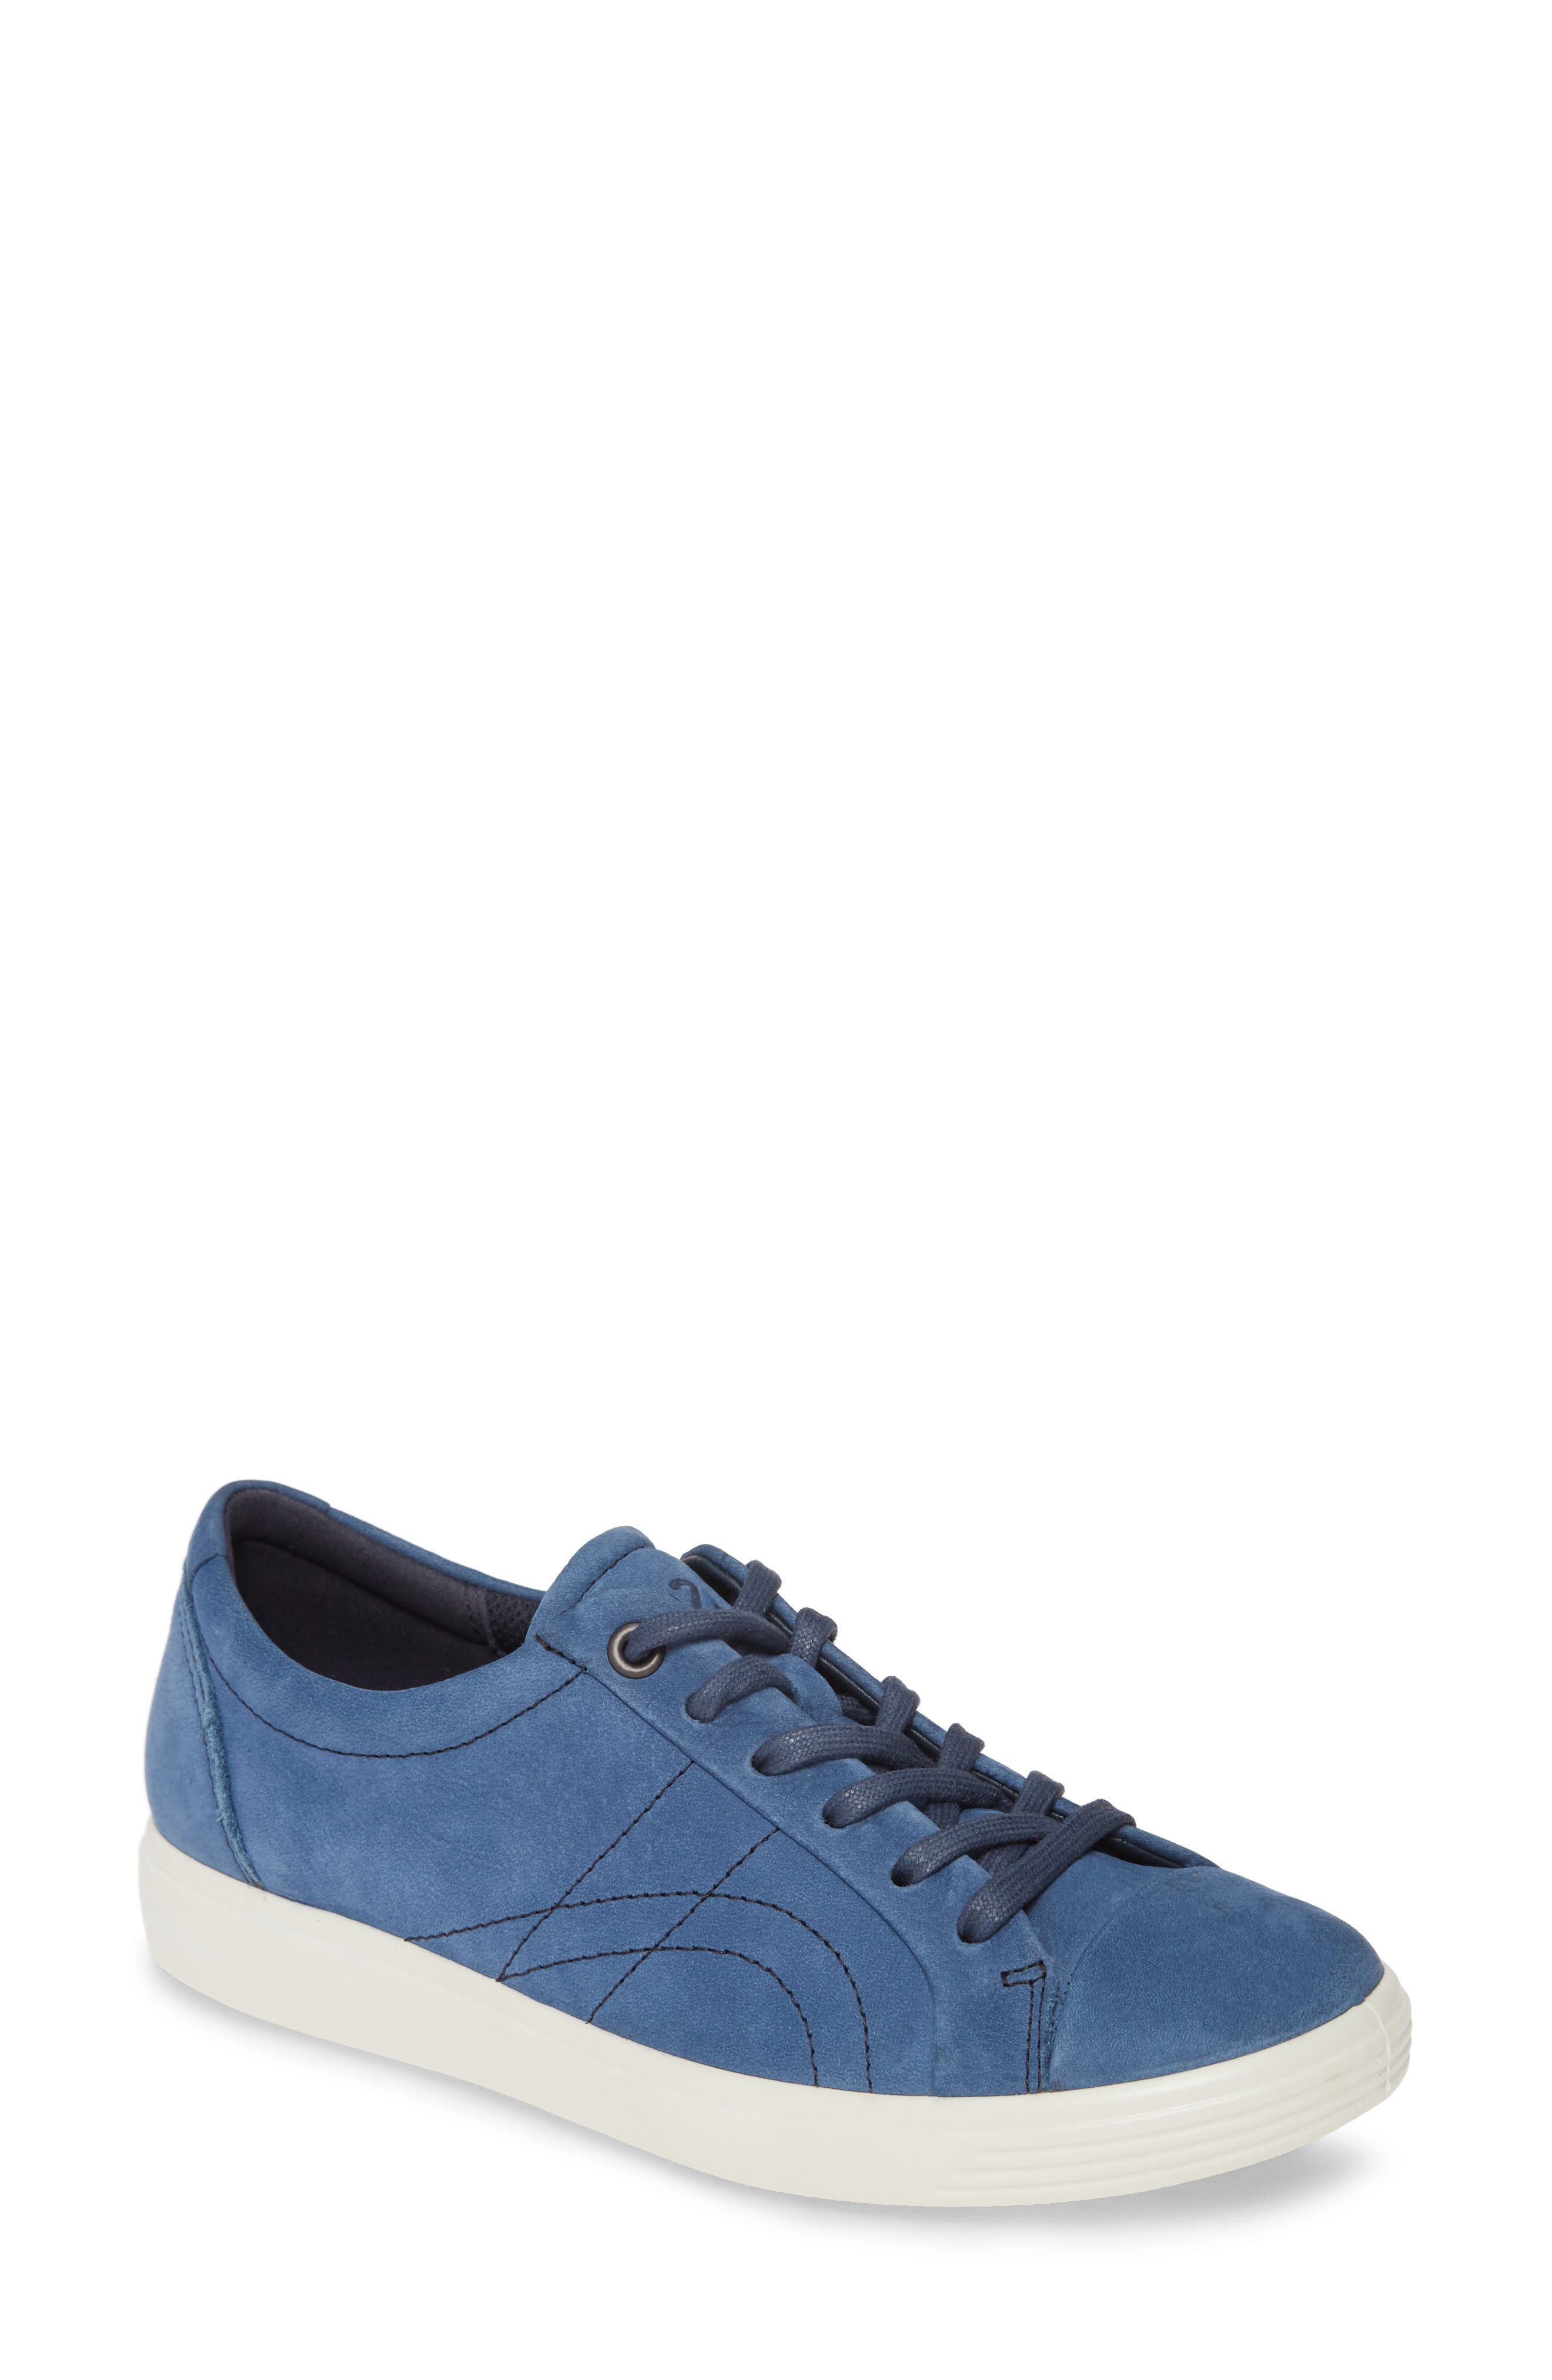 Image of ECCO Soft 7 Leather Stitched Sneaker